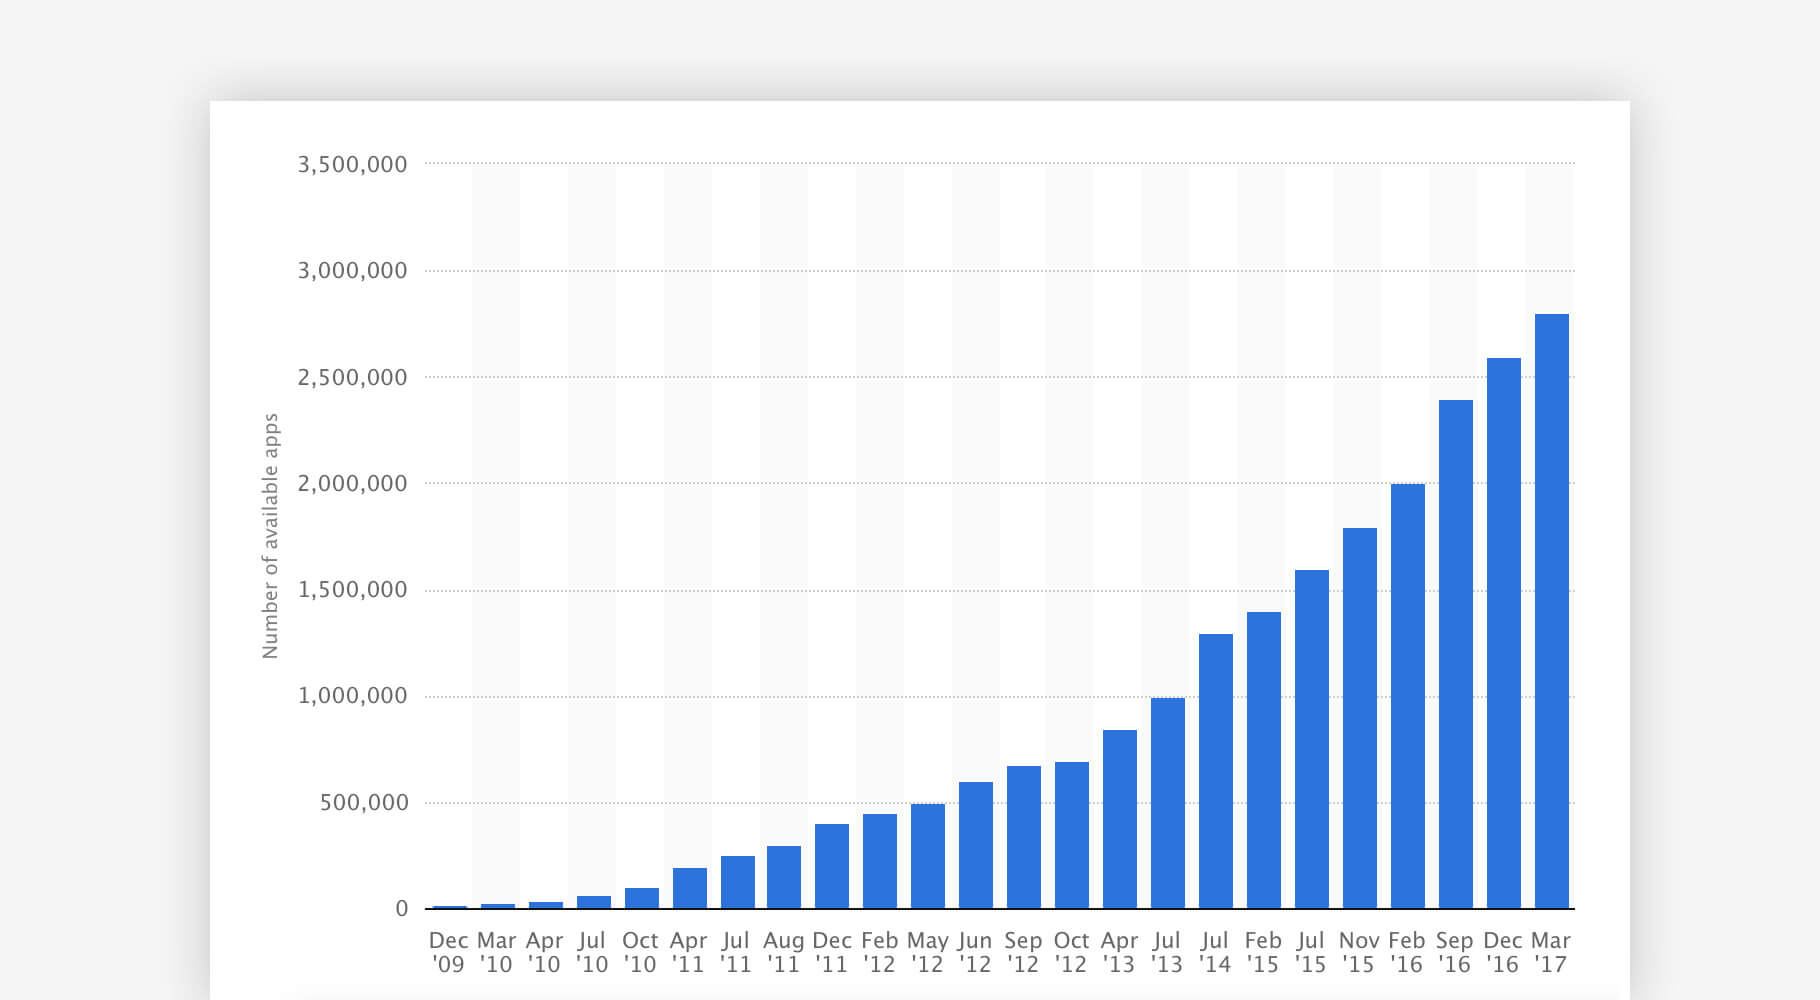 Google Play statistics: number of available applications from December 2009 to March 2017